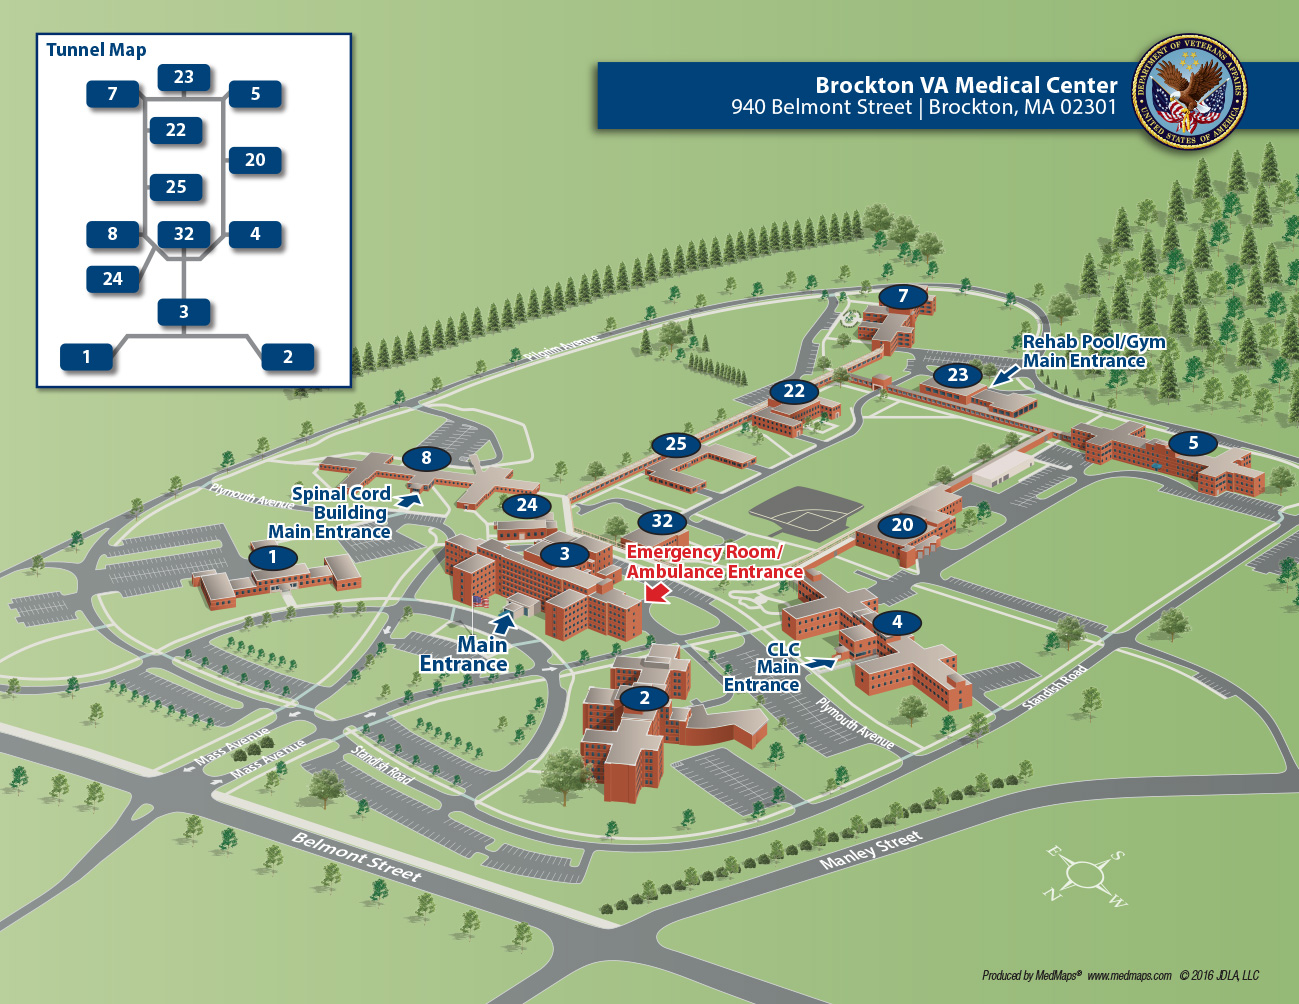 Brockton Va Campus Map.Brockton Va Medical Center